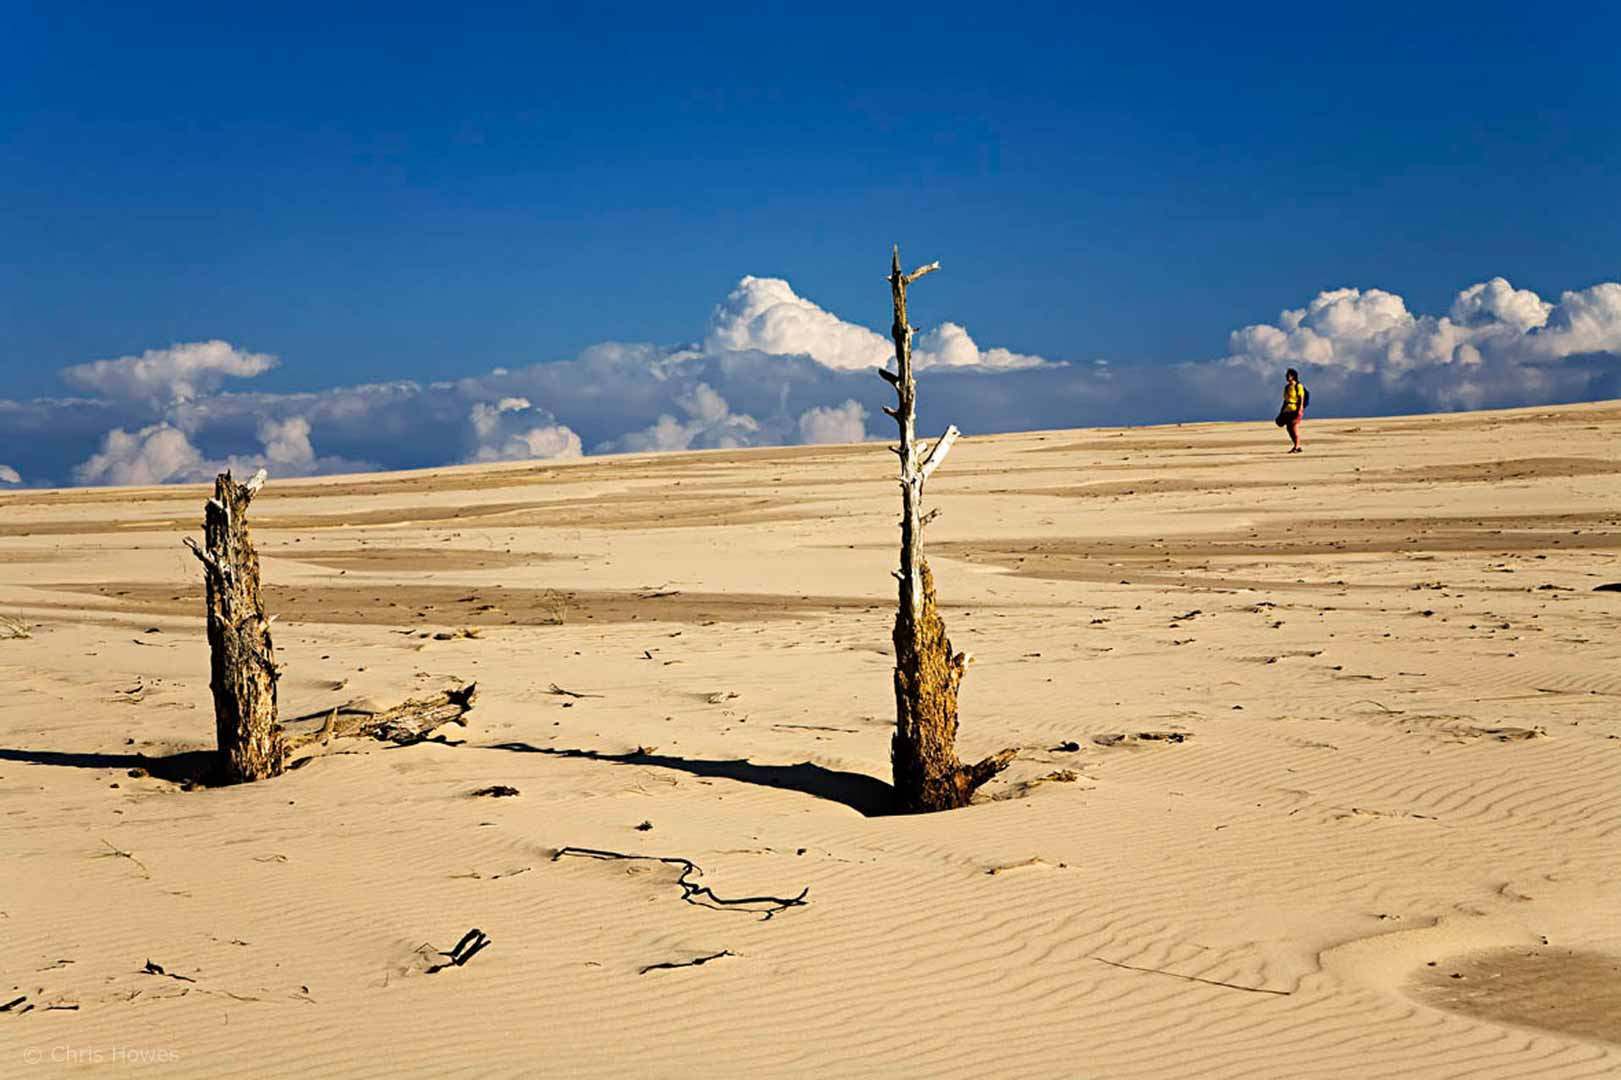 Wydma Czolpinska dune, Slowinski national park, Poland